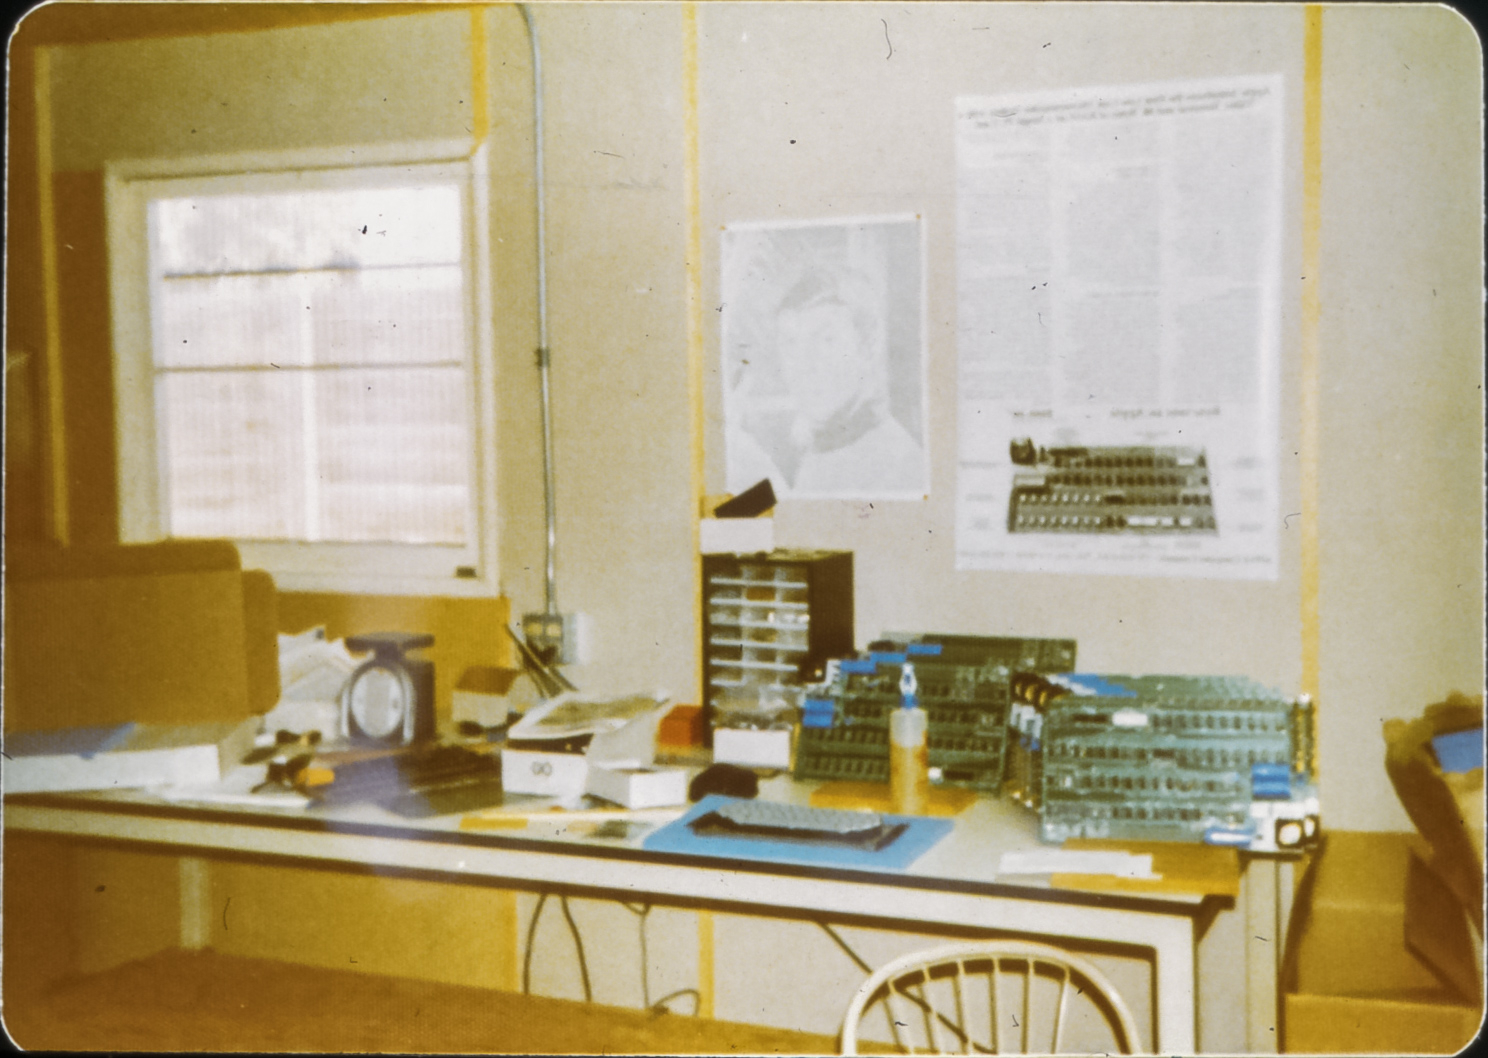 Apple-1 boards being assembled in the Jobs family home in 1976